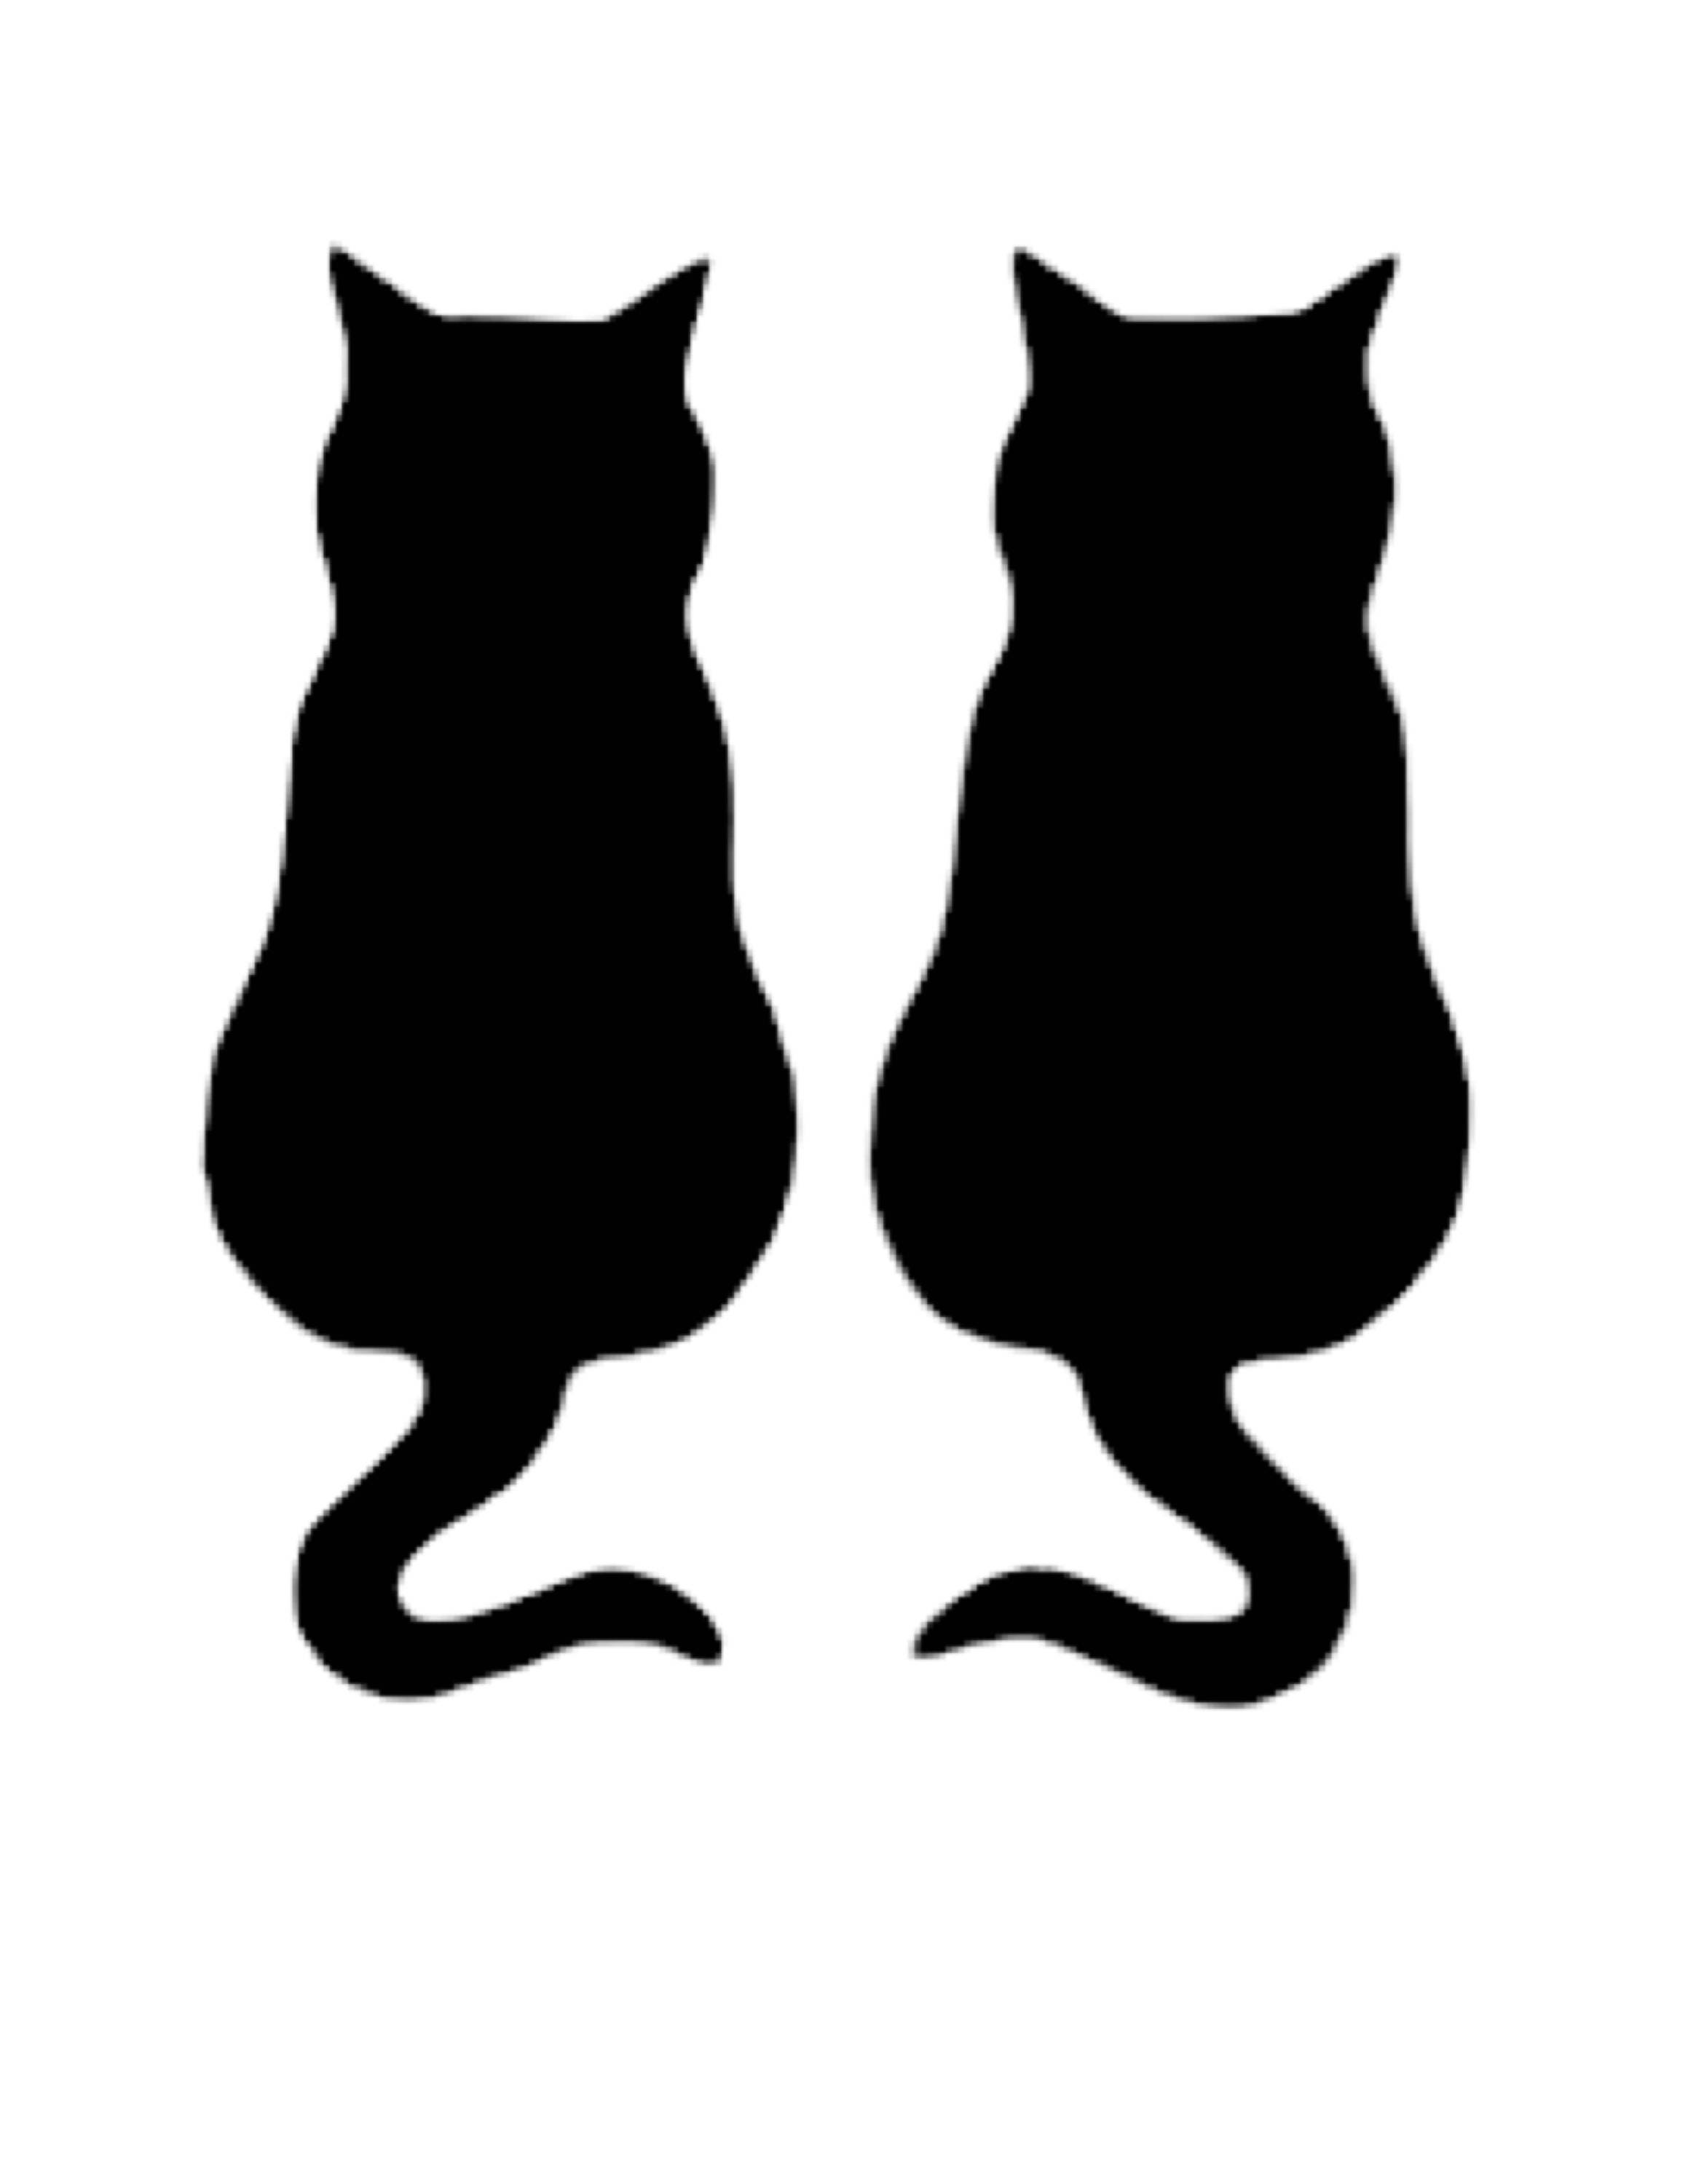 Two Cats Side By Side Stencil Made From 4 Ply Mat Board